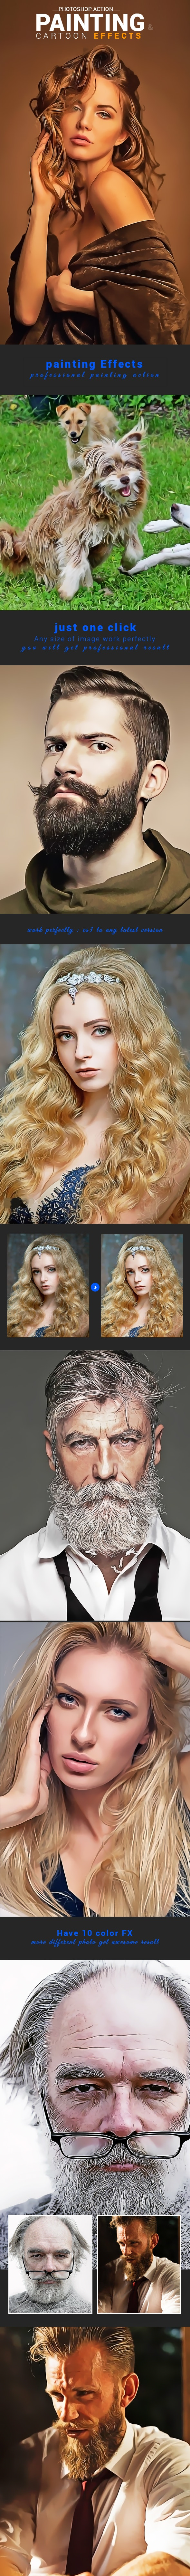 Painting & Cartoon Effects - Photo Effects Actions